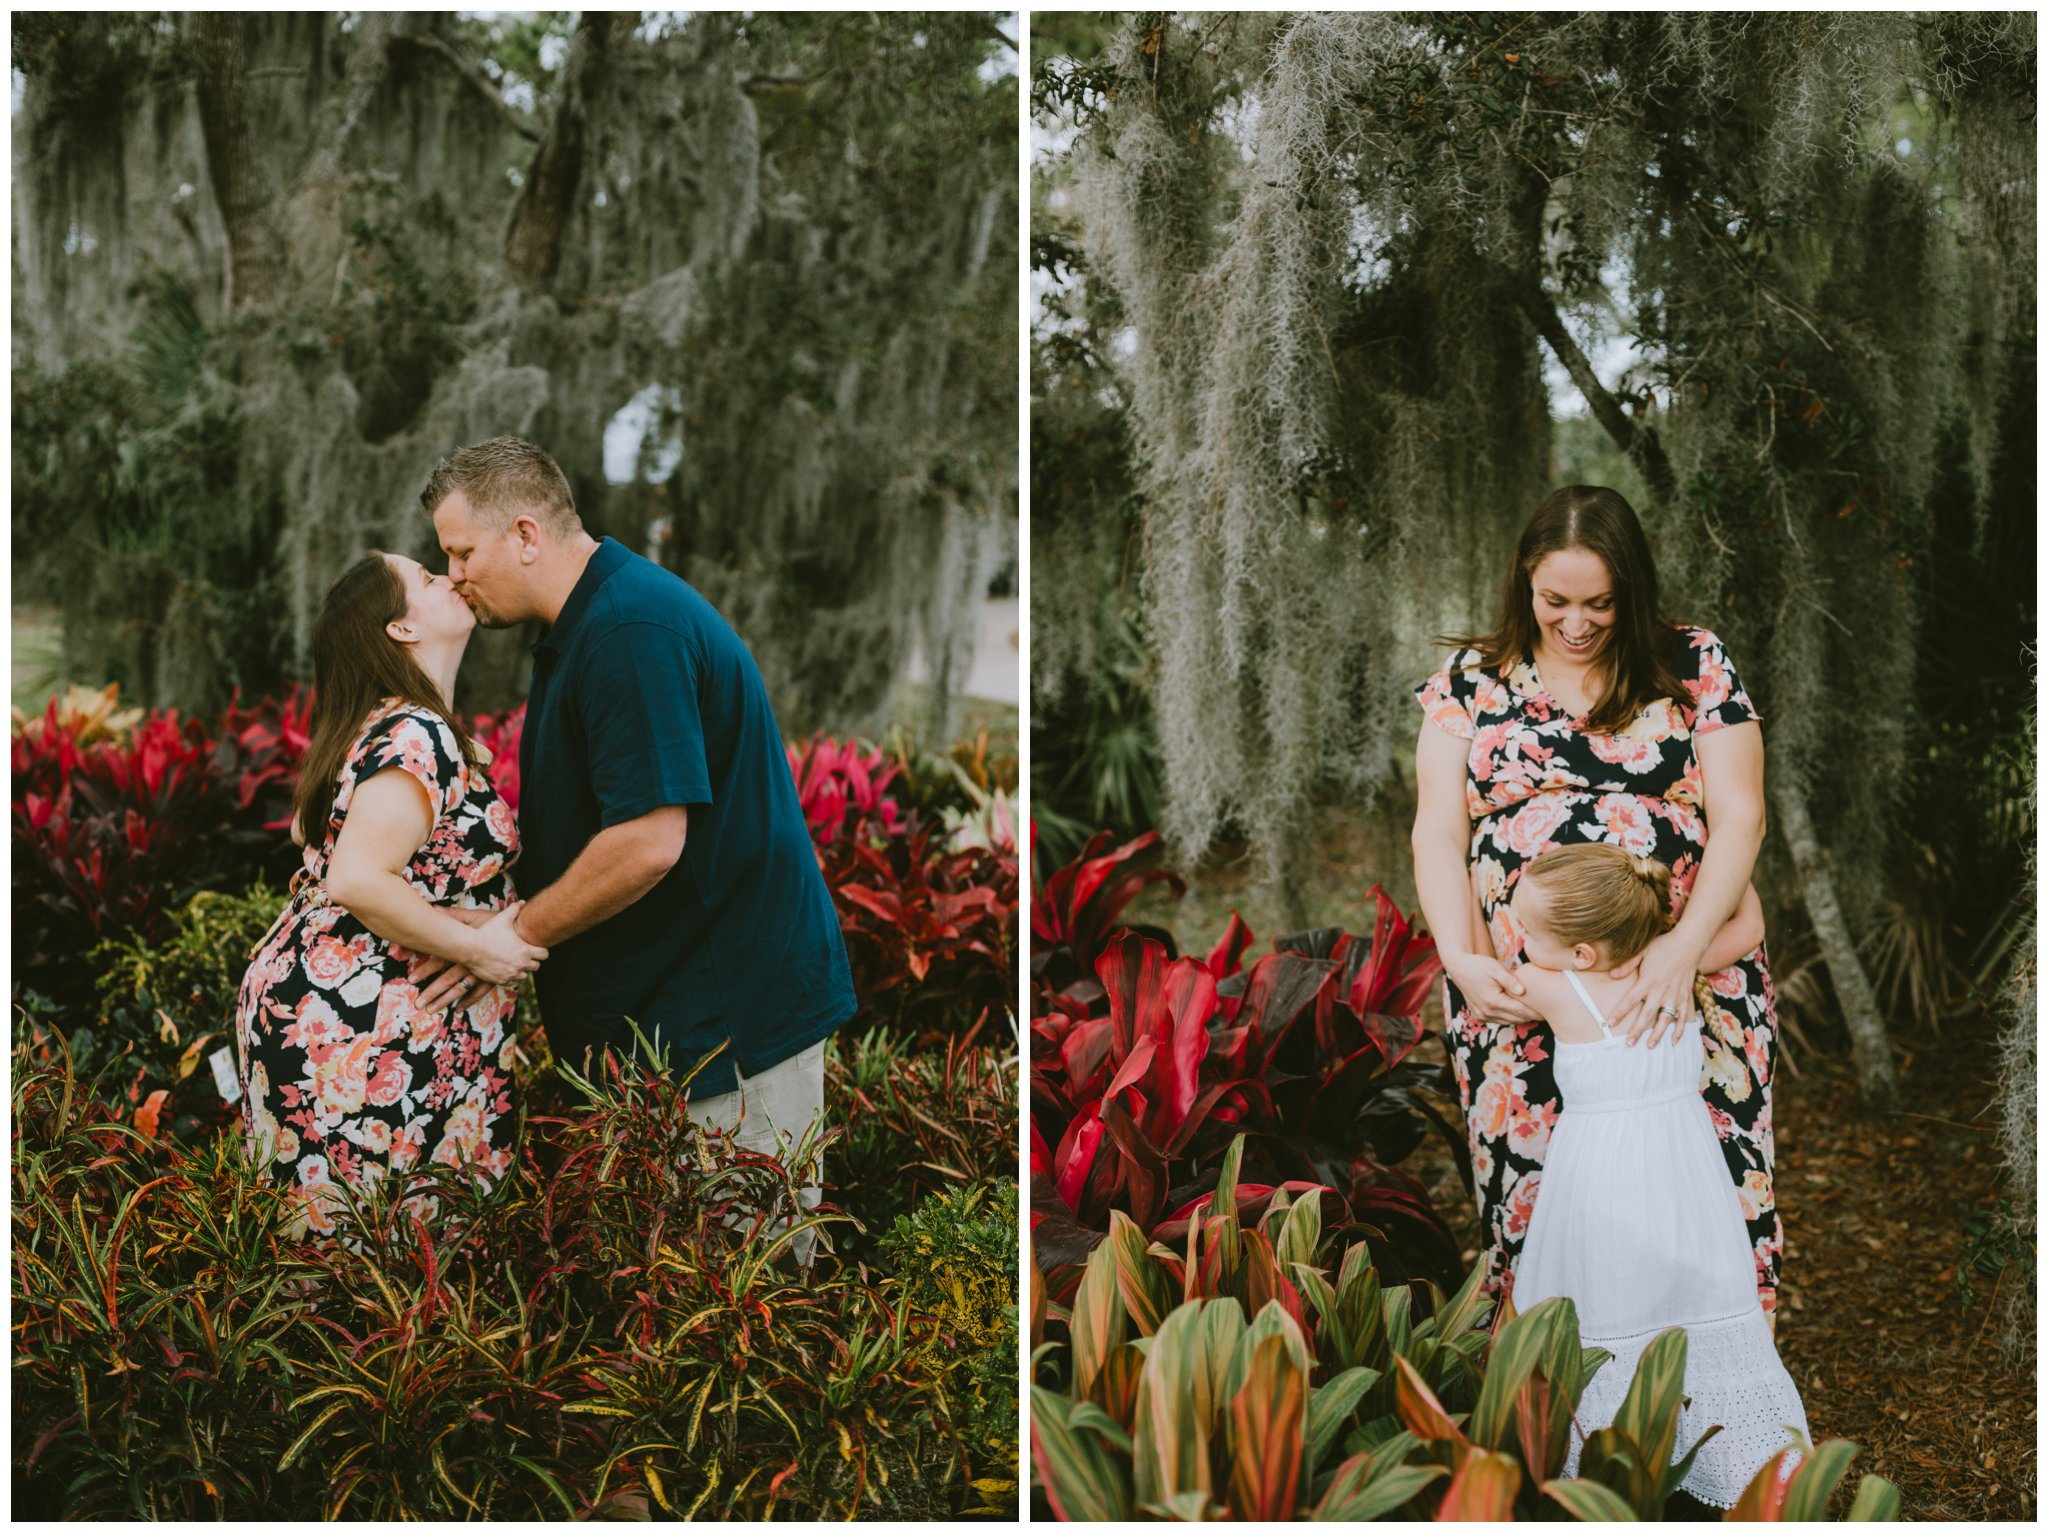 Kimberly Smith Photography| Port St Lucie Botanical Gardens| Maternity Photos| Jupiter Florida Photographer | Stuart Fl photographer_0190.jpg